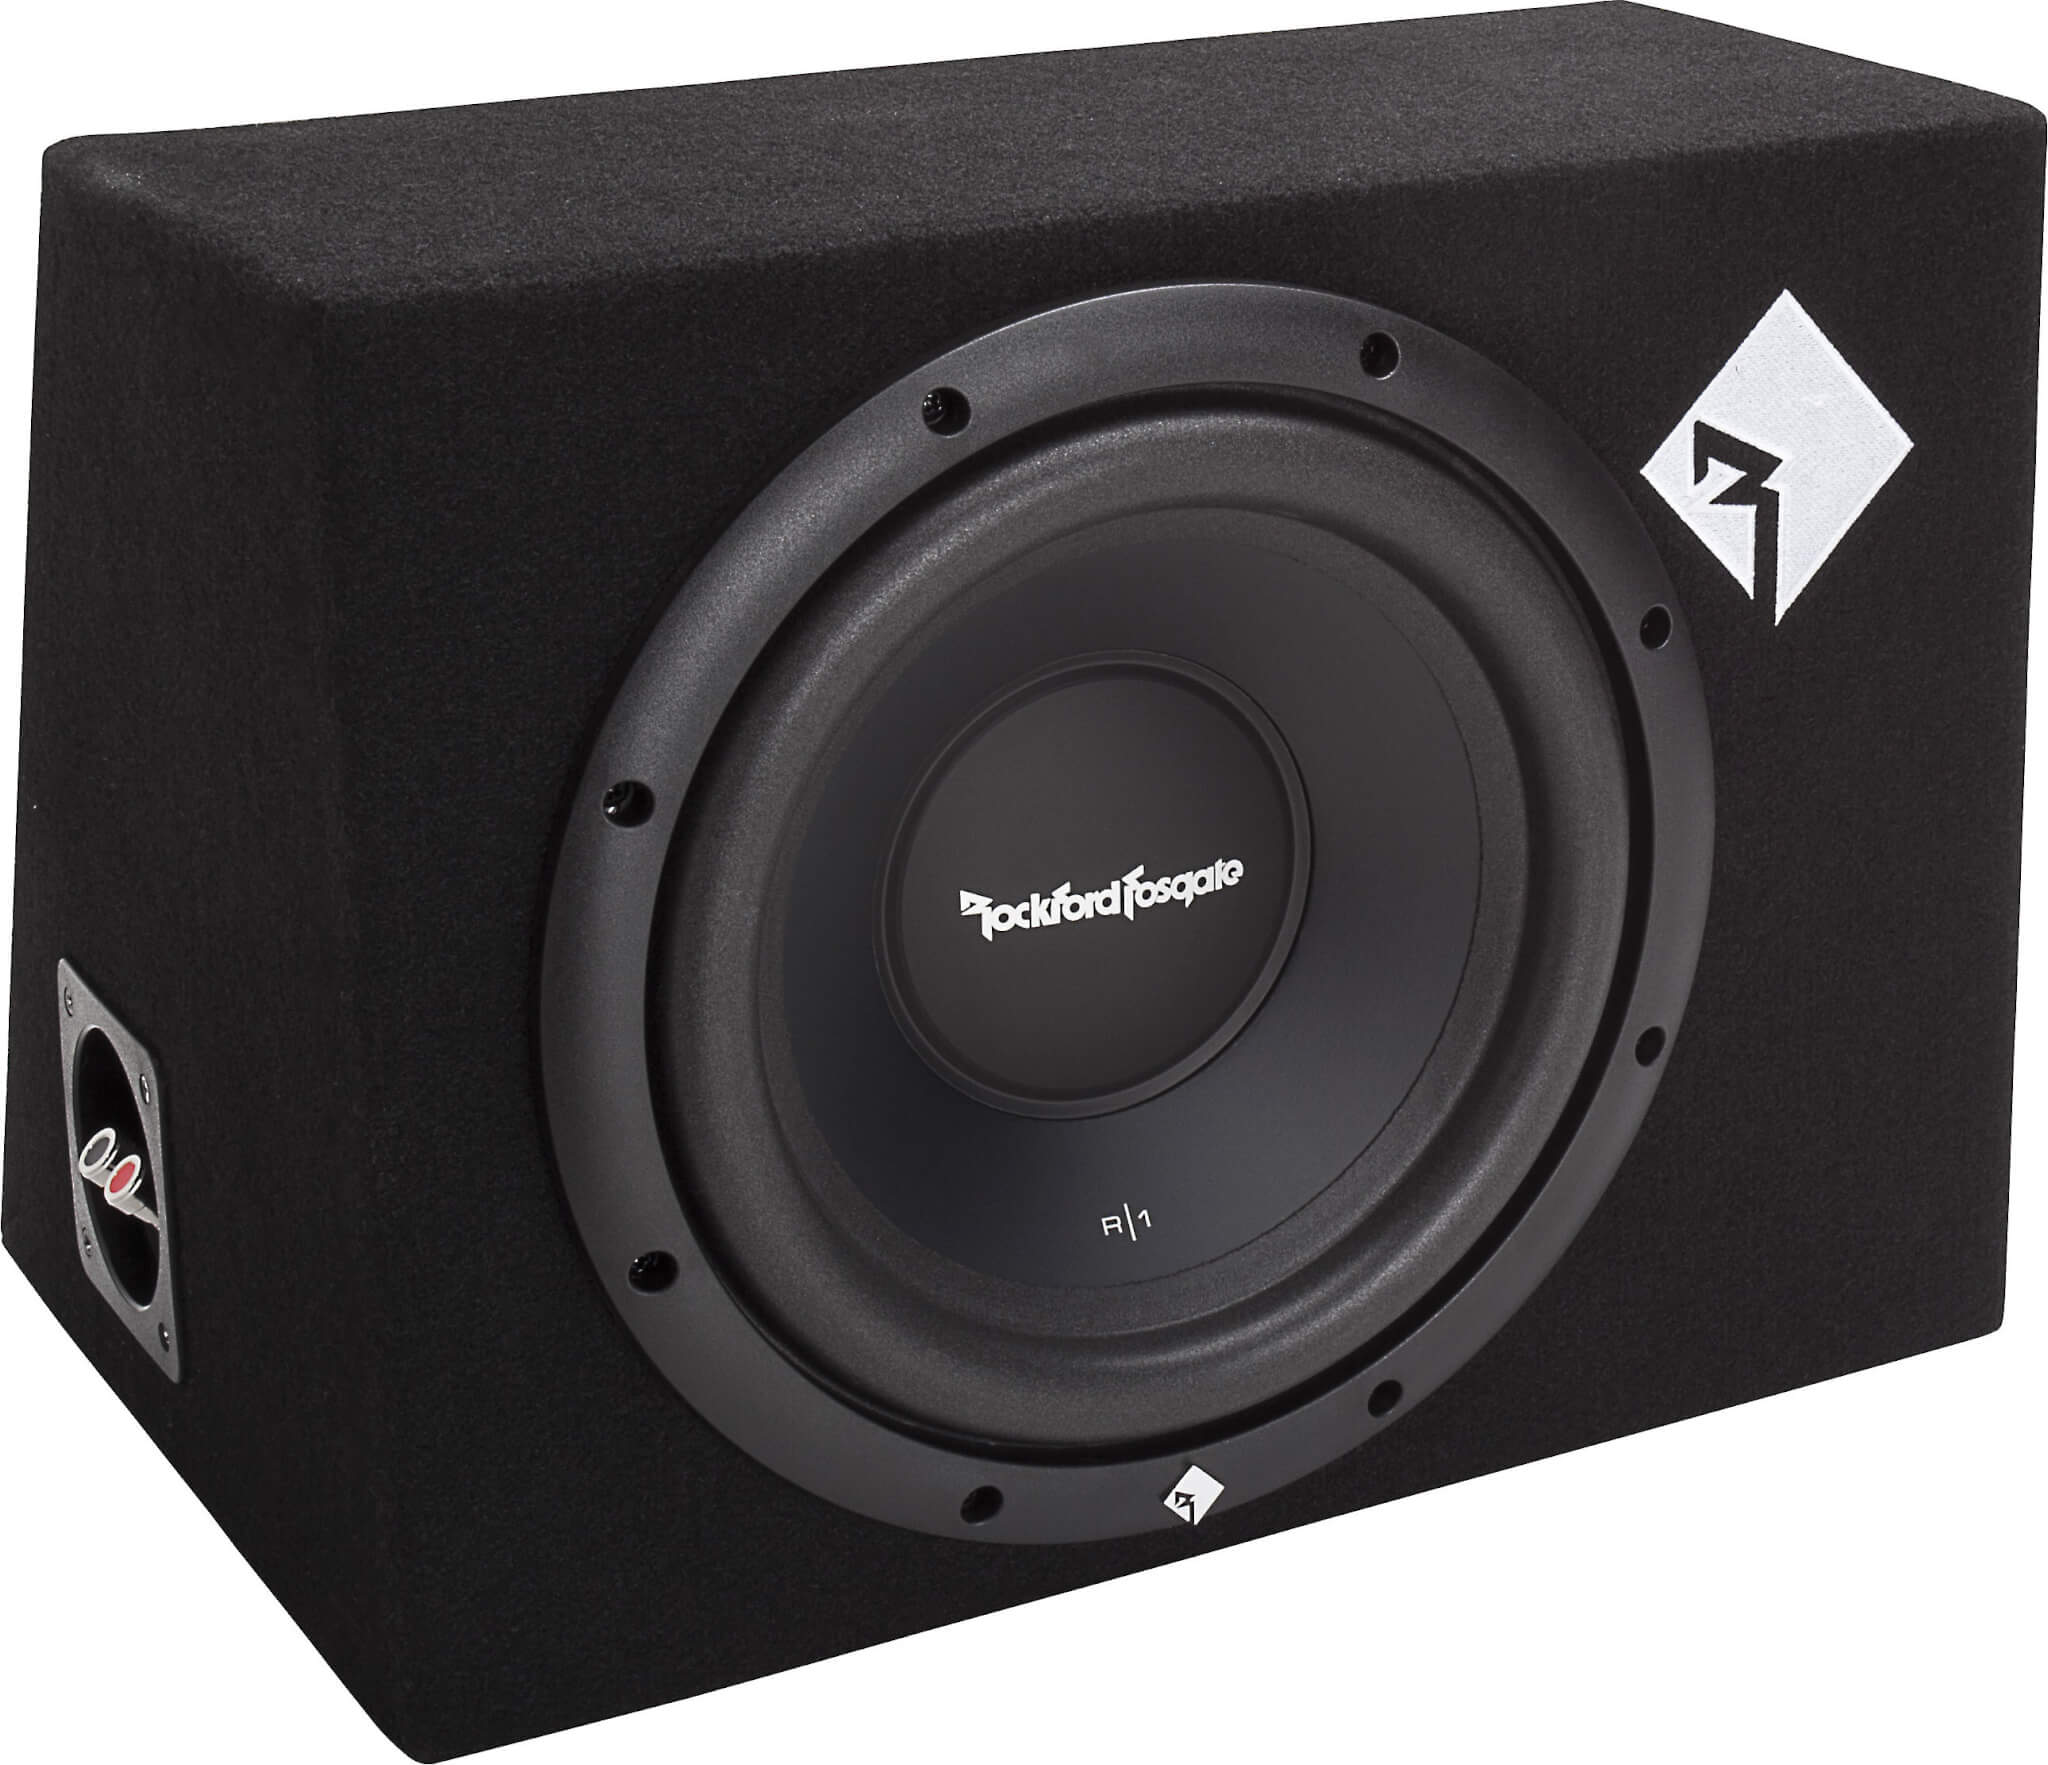 Rockford R11X10 10-Inch underseat subwoofer for car